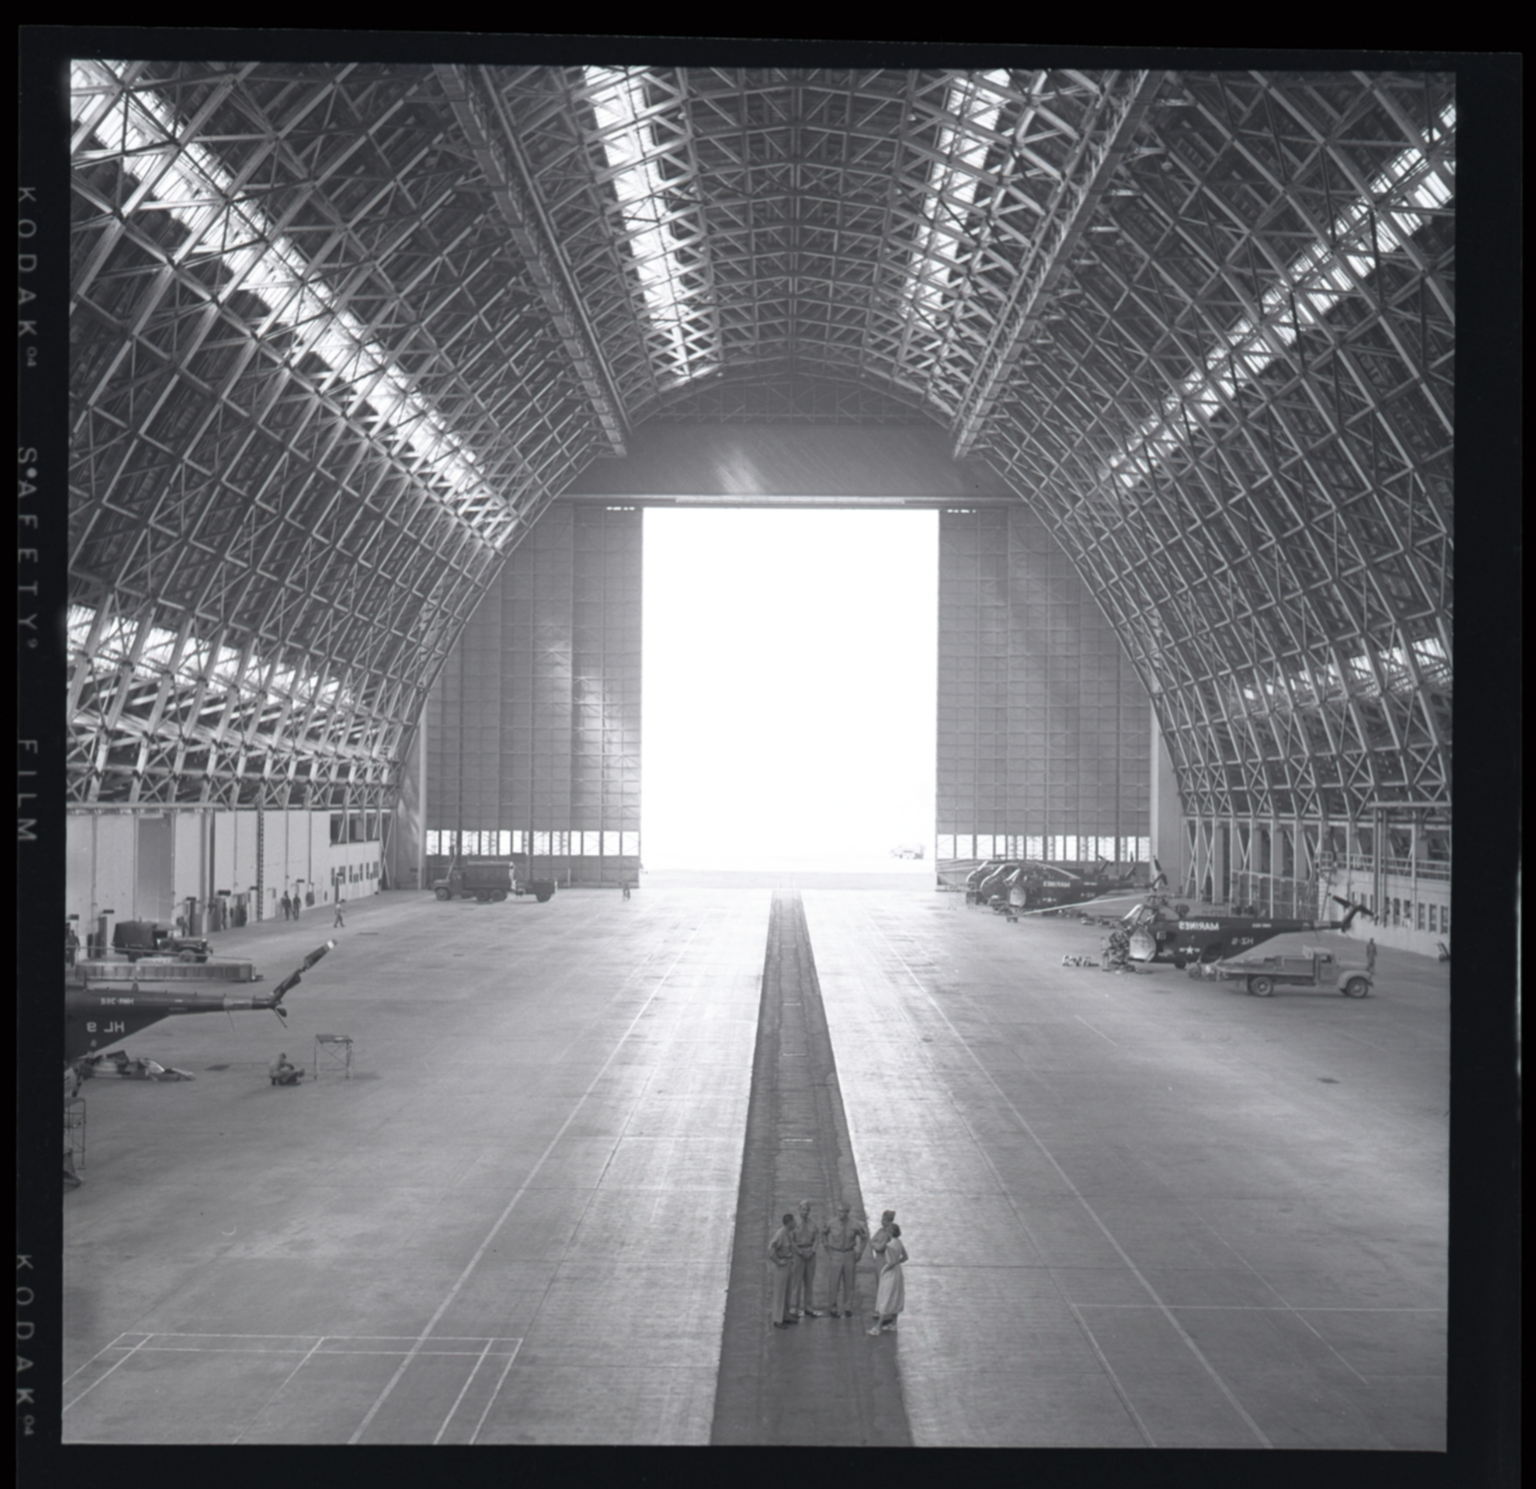 """Huge wooden blimp hangar built during WWII entirely of wood (to conserve strategic metal) and housed U.S. Navy """"Lighter-than-air"""" blimps. The blimp was used for patrol along the west coast of California to watch for enemy submarines. At one time there were 4 blimps serviced and crews were billeted there at the Lighter-than-air Station in Santa Ana, near Tustin."""